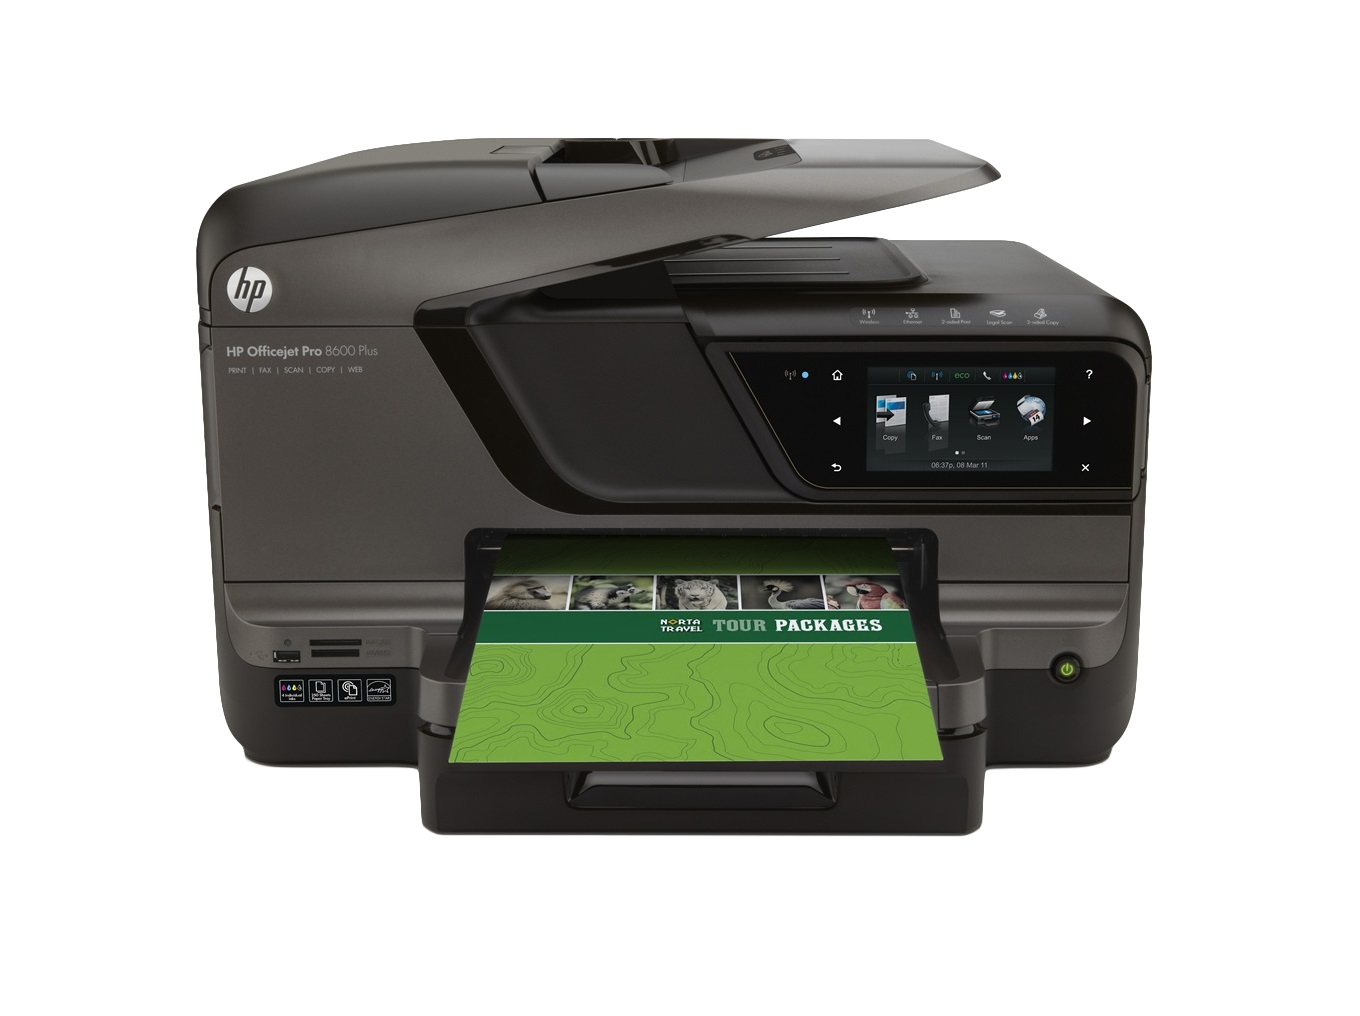 HP OfficeJet Pro 8600 Plus EAIO/ Colour/ A4/ 20ppm Mono 16ppm Colour/ Network/ Duplex/ Fax/ WiFi CM750A - Refurbished